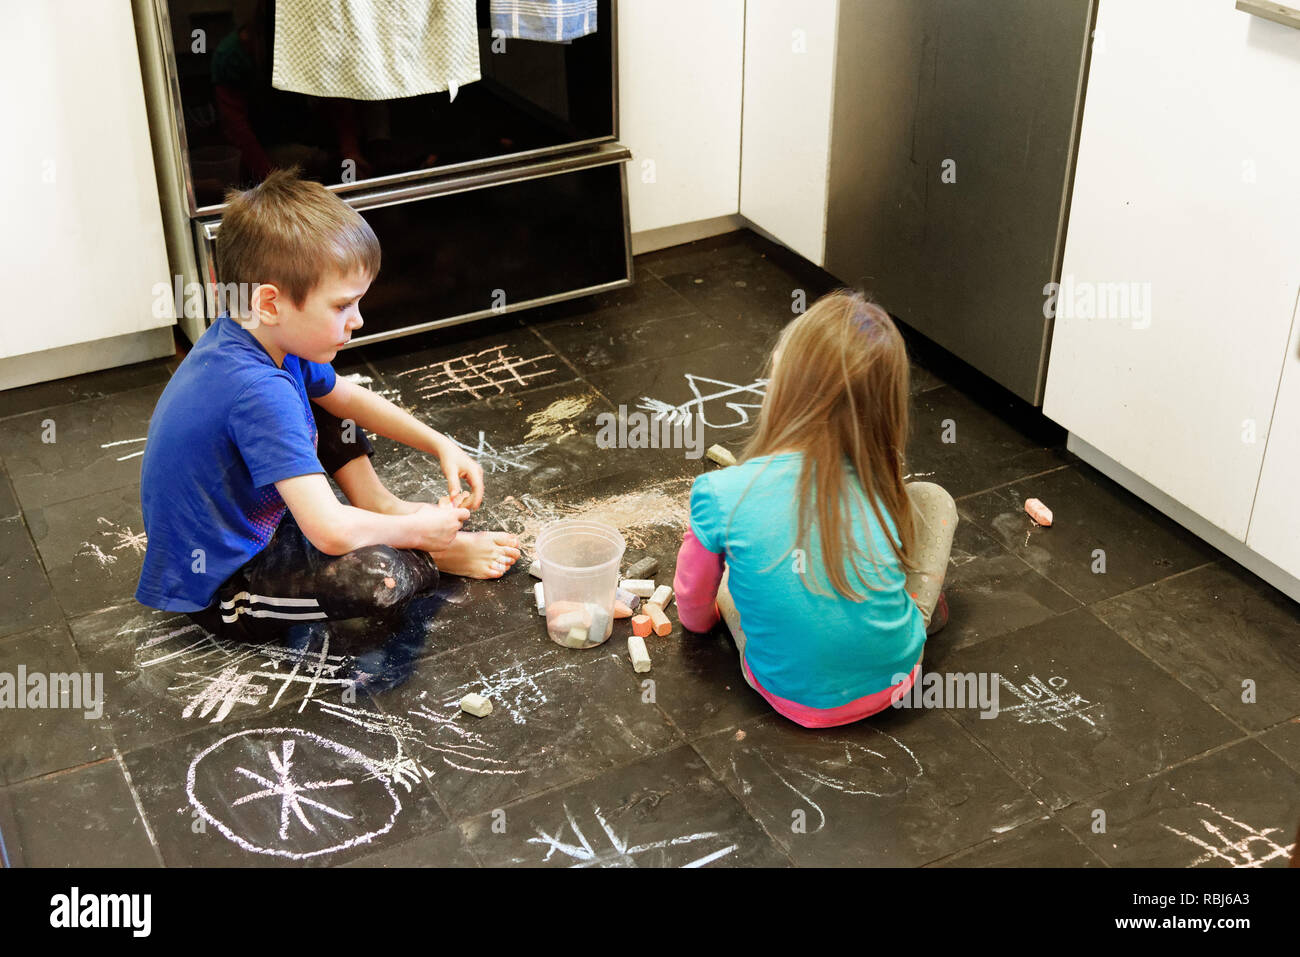 Two children using chalks to draw on a slate floor in their kitchen - Stock Image